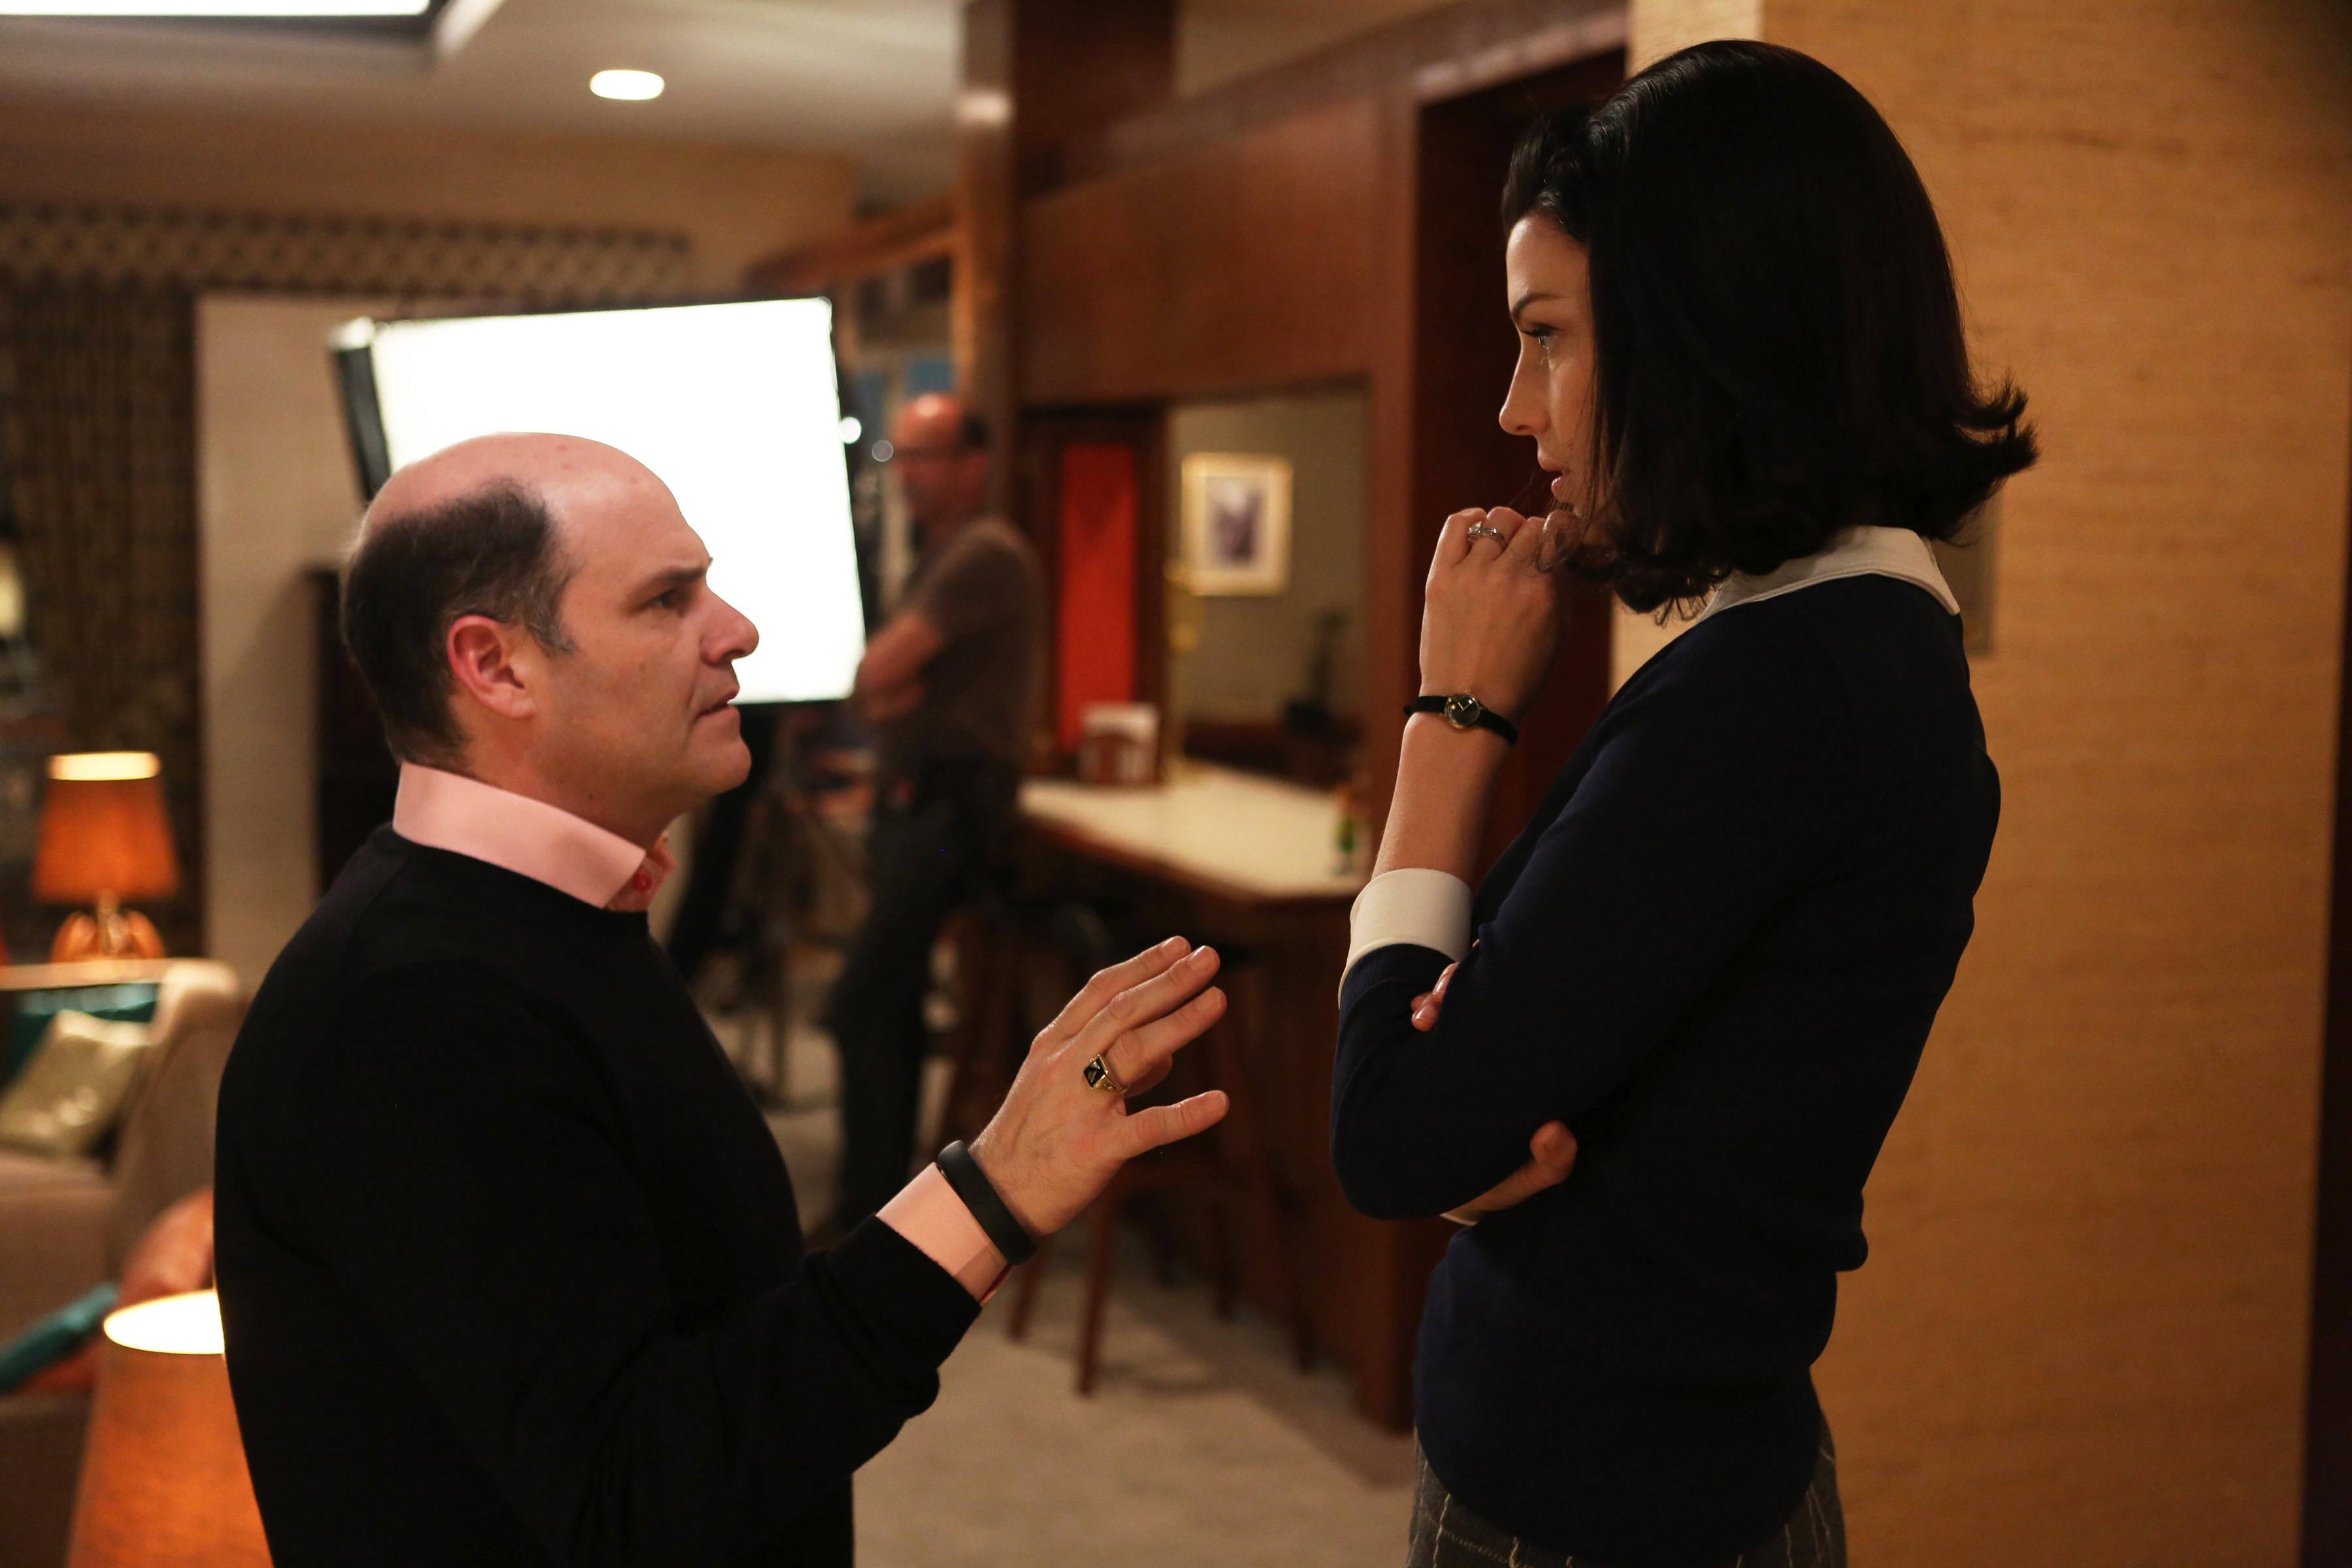 """Mad Men"" creator Matthew Weiner, left, talks with actress Jessica Pare on the set of the AMC TV series. Weiner, as the auteur of the landmark drama series, voices both resolve and wonderment at his task of bringing ""Mad Men"" in for a landing. The final season begins at 9 p.m. Sunday."